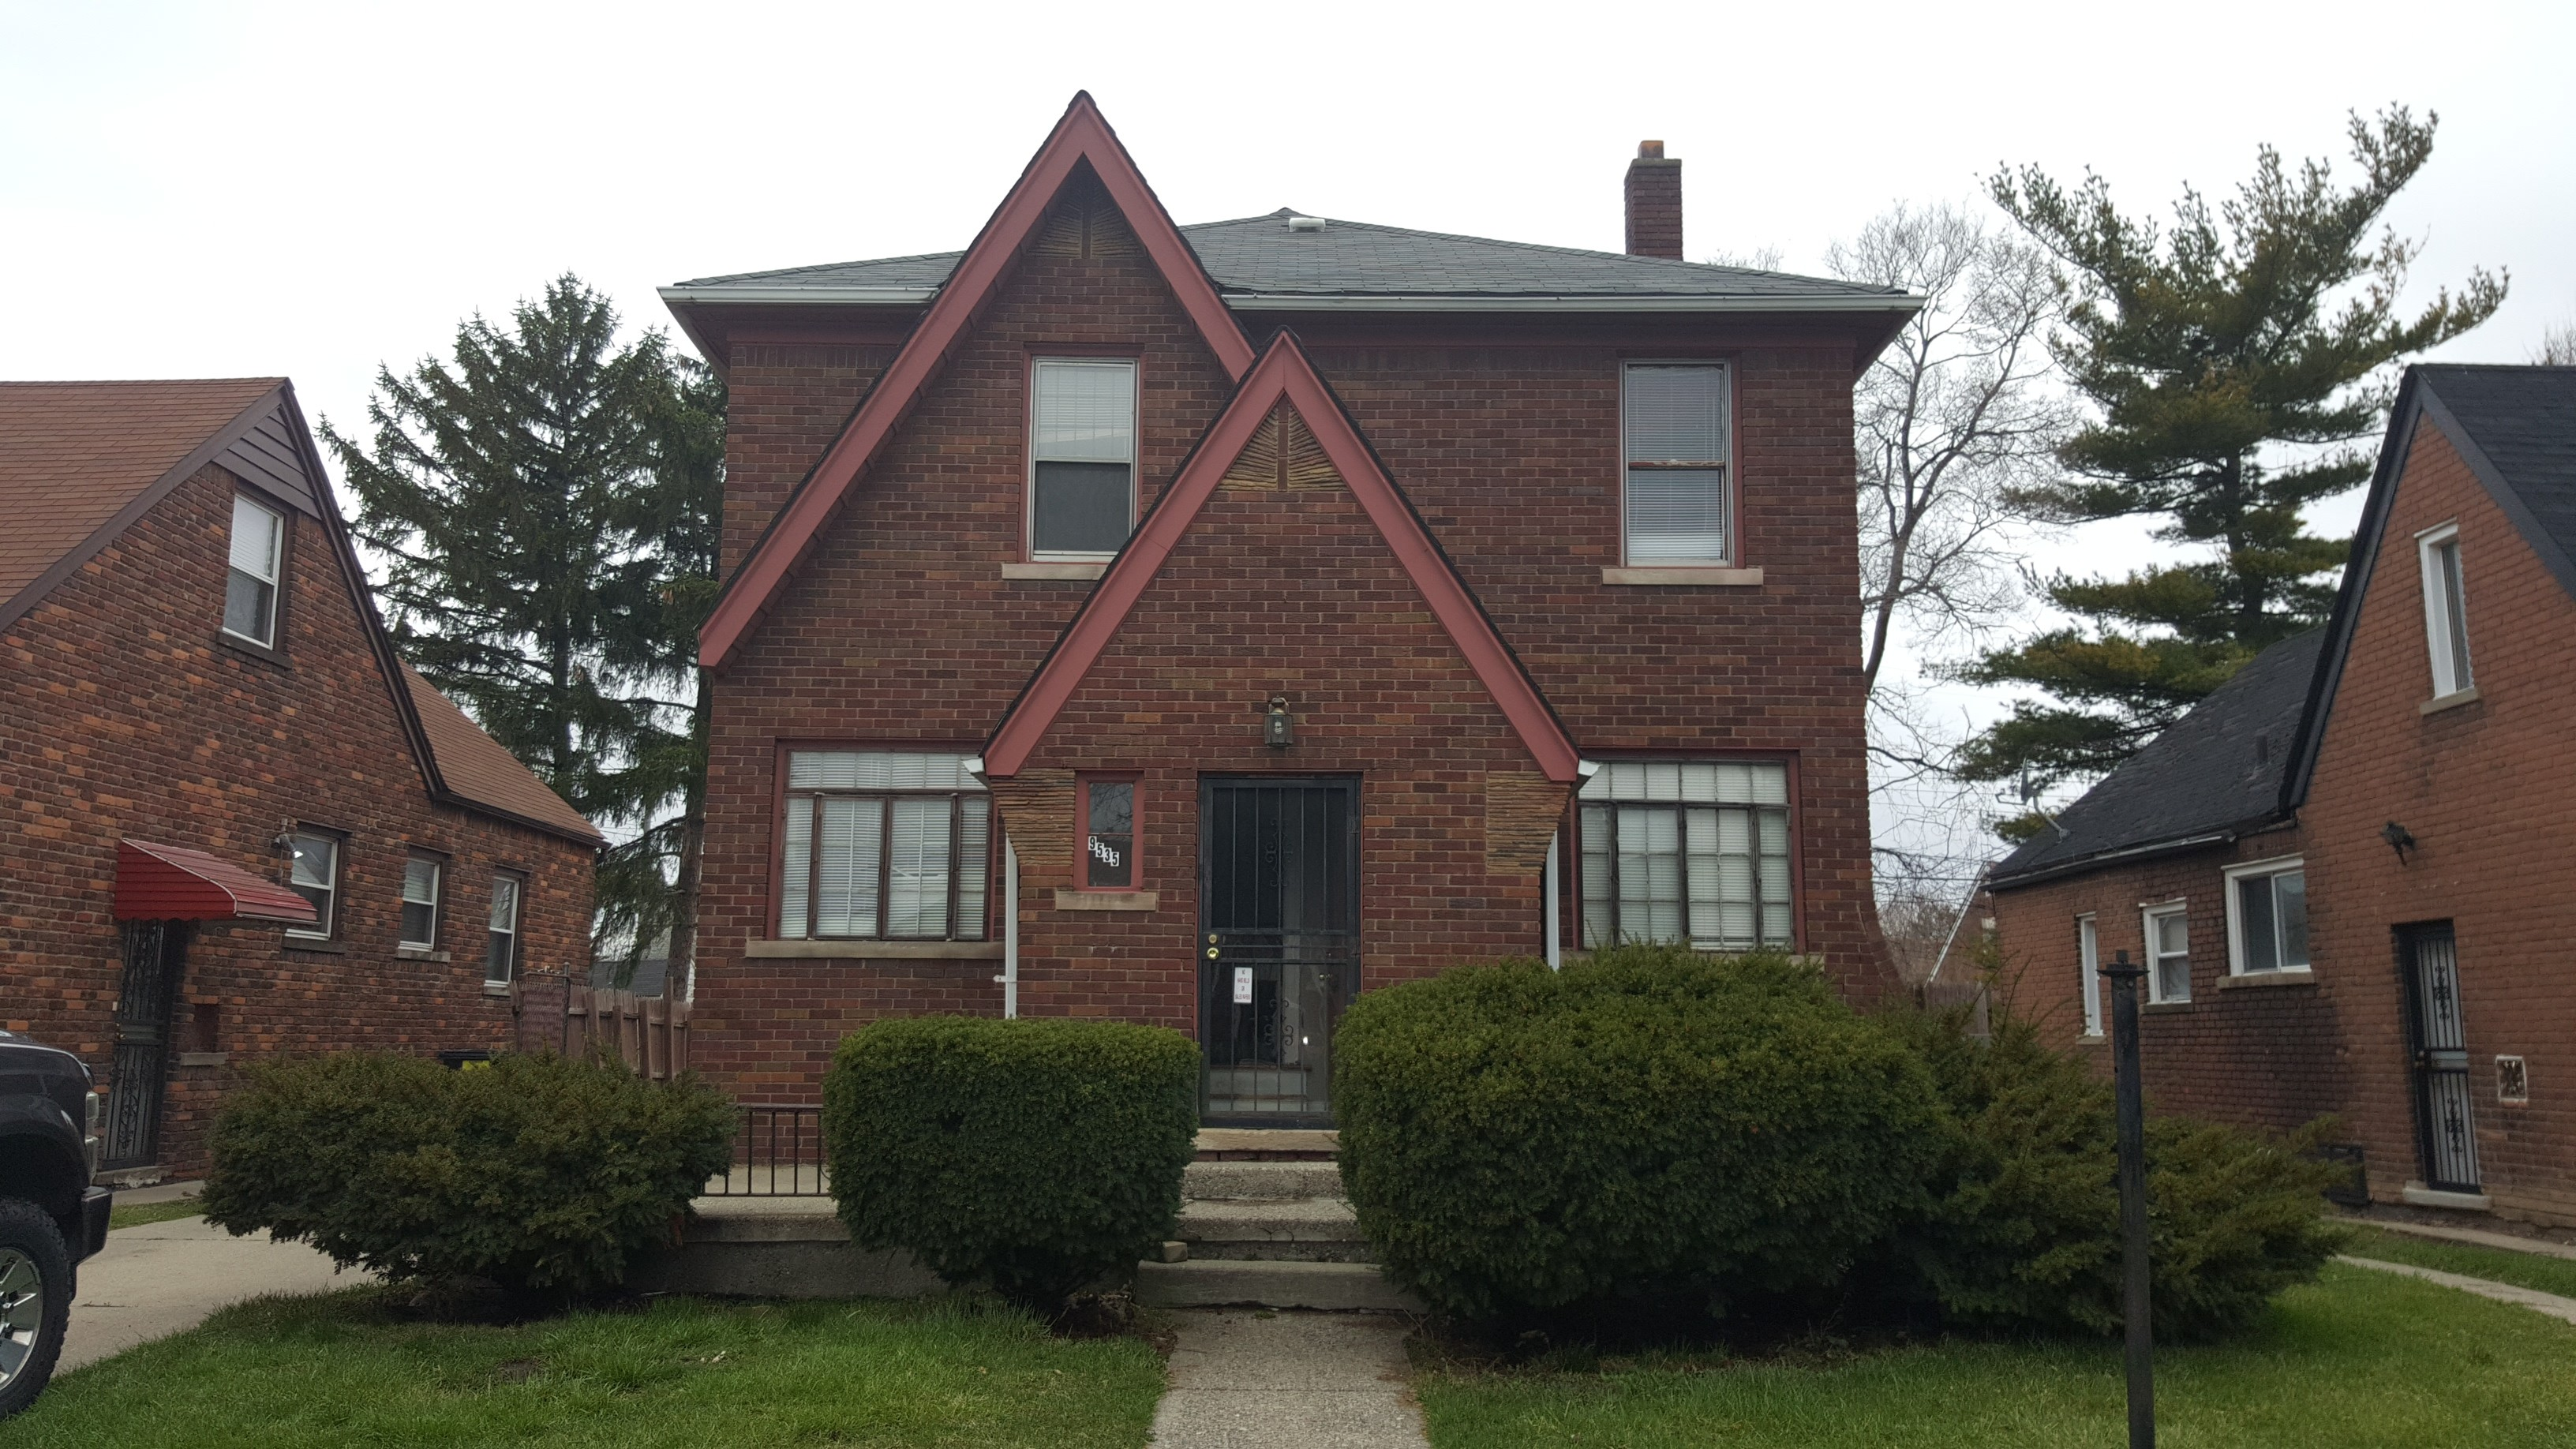 9535 Terry St Detroit Mi 48227 3 Bedroom Apartment For Rent For 750 Month Zumper